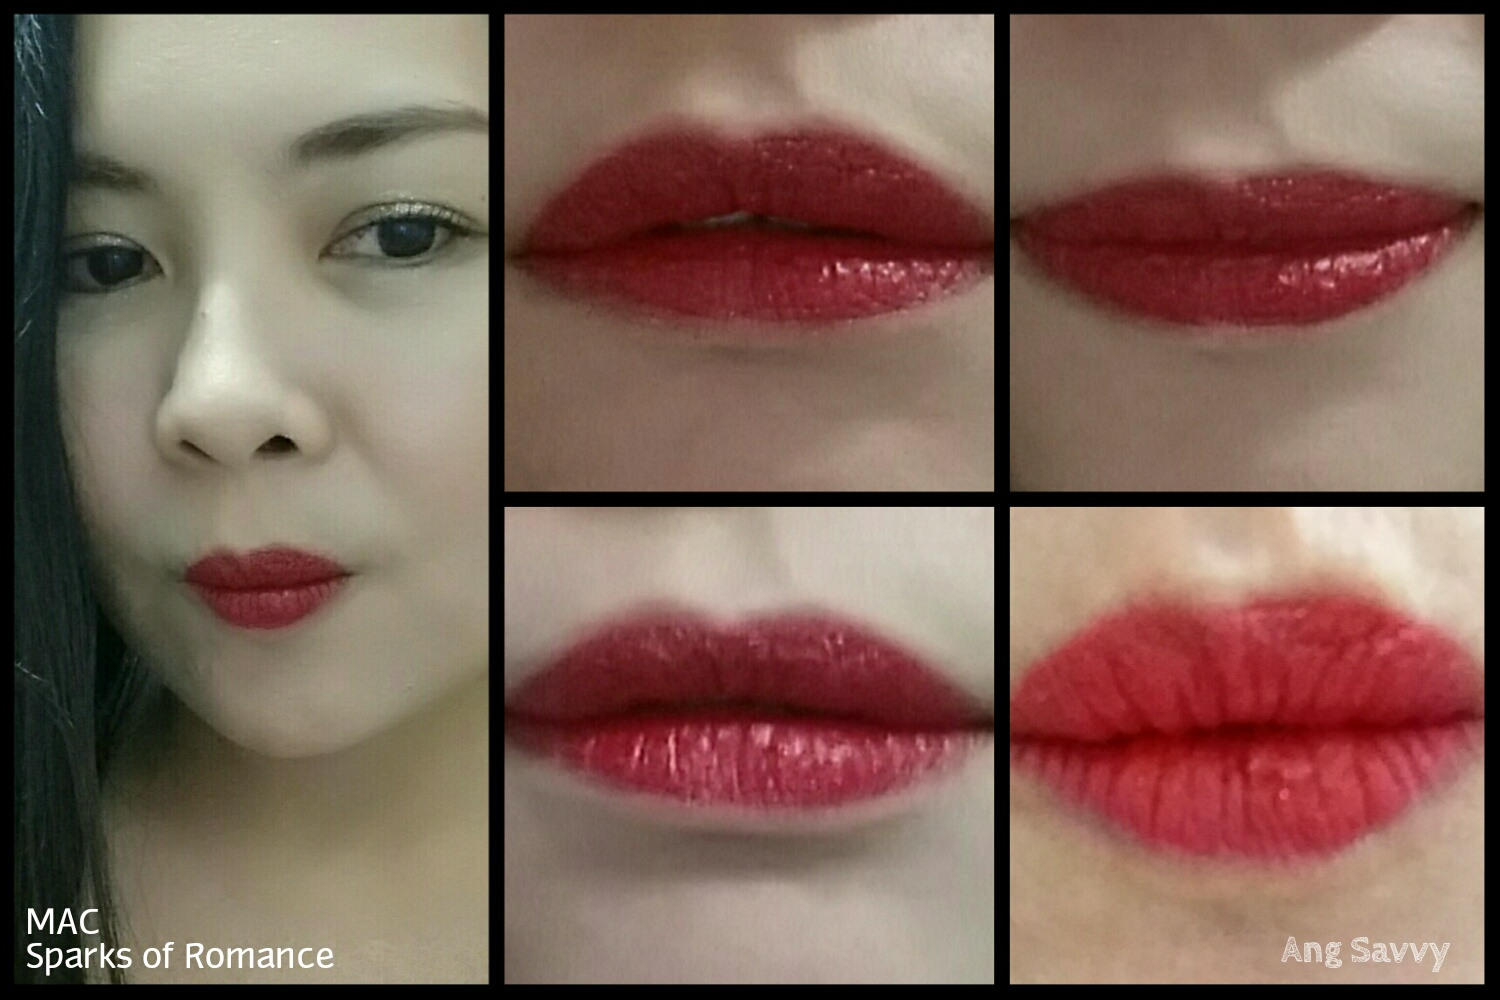 MAC Sparks of Romance Matte Frost Lipstick Swatch